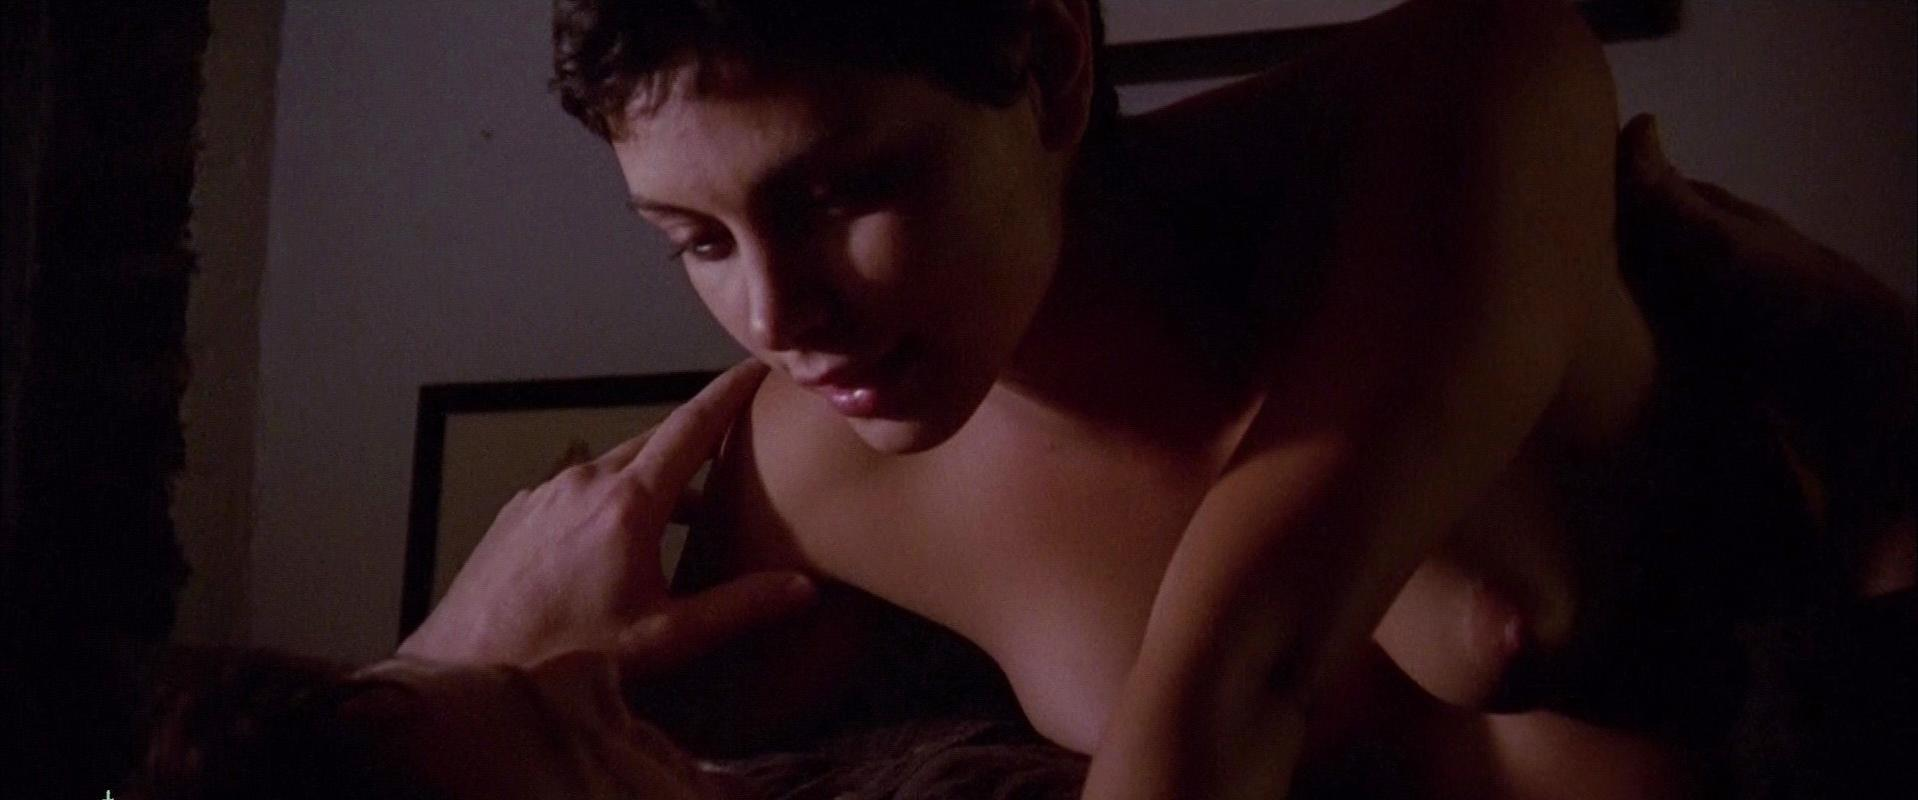 Morena Baccarin Nude Death In Love